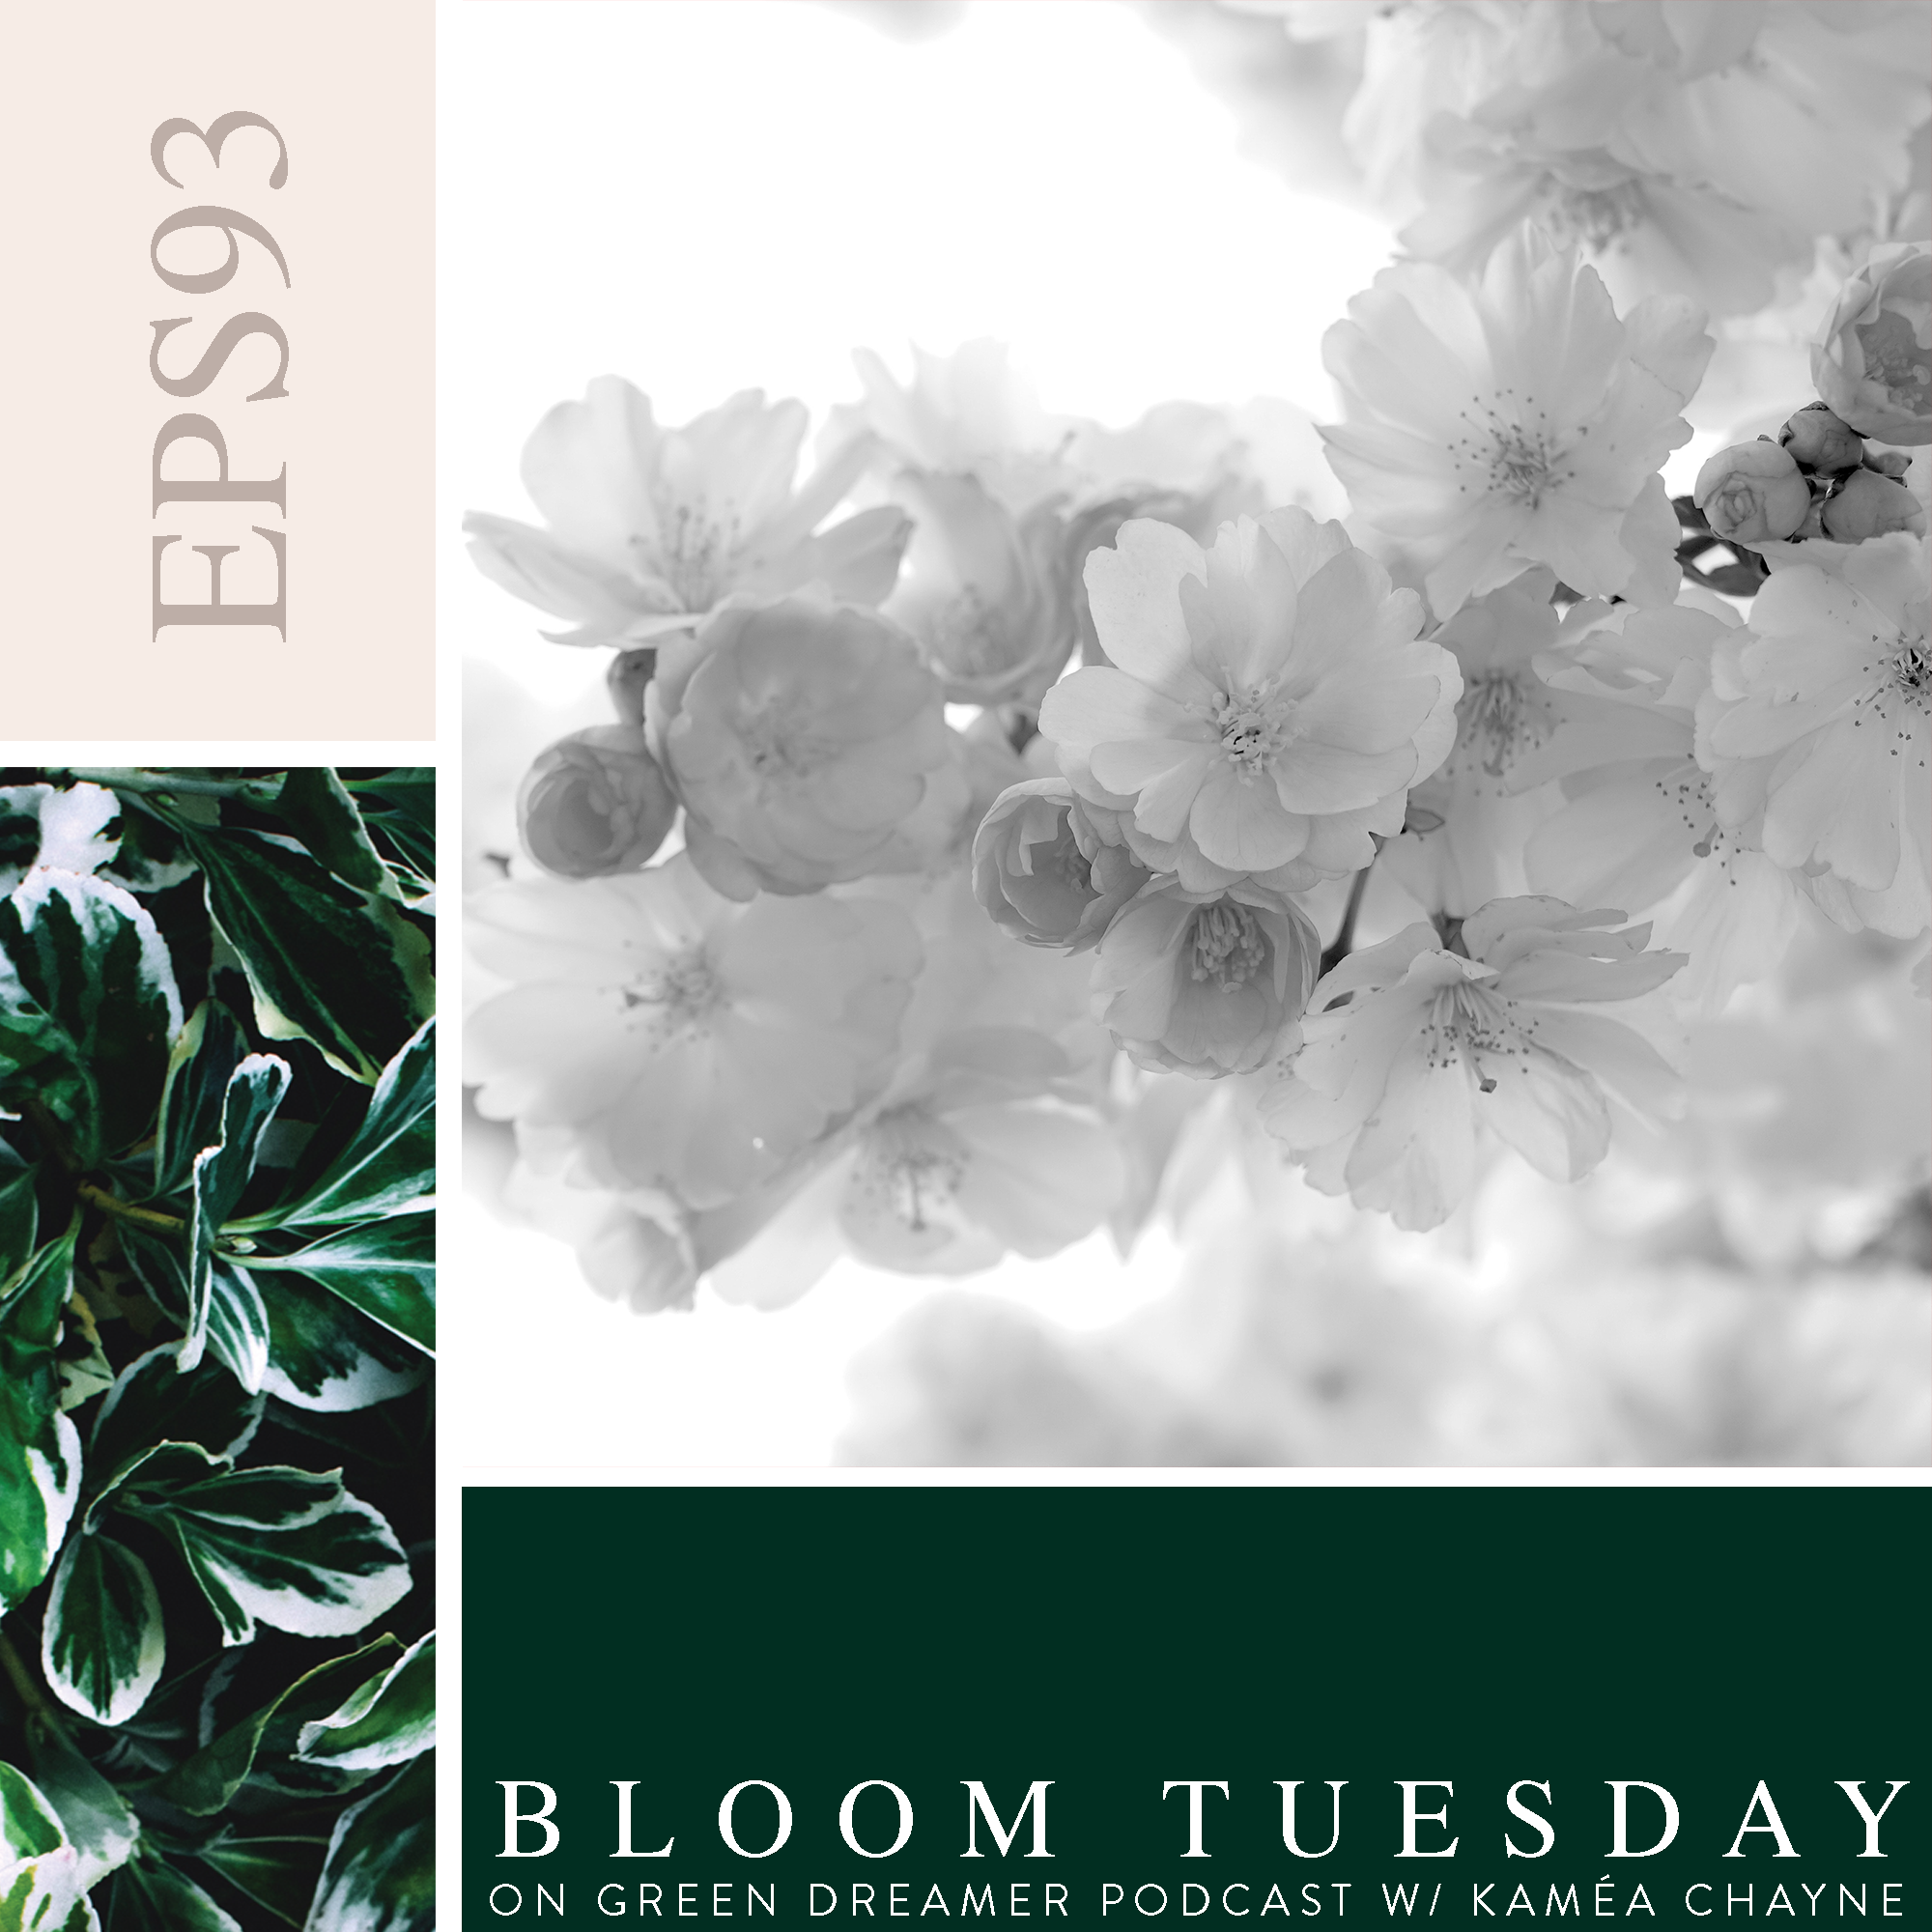 93) BLOOM TUESDAY